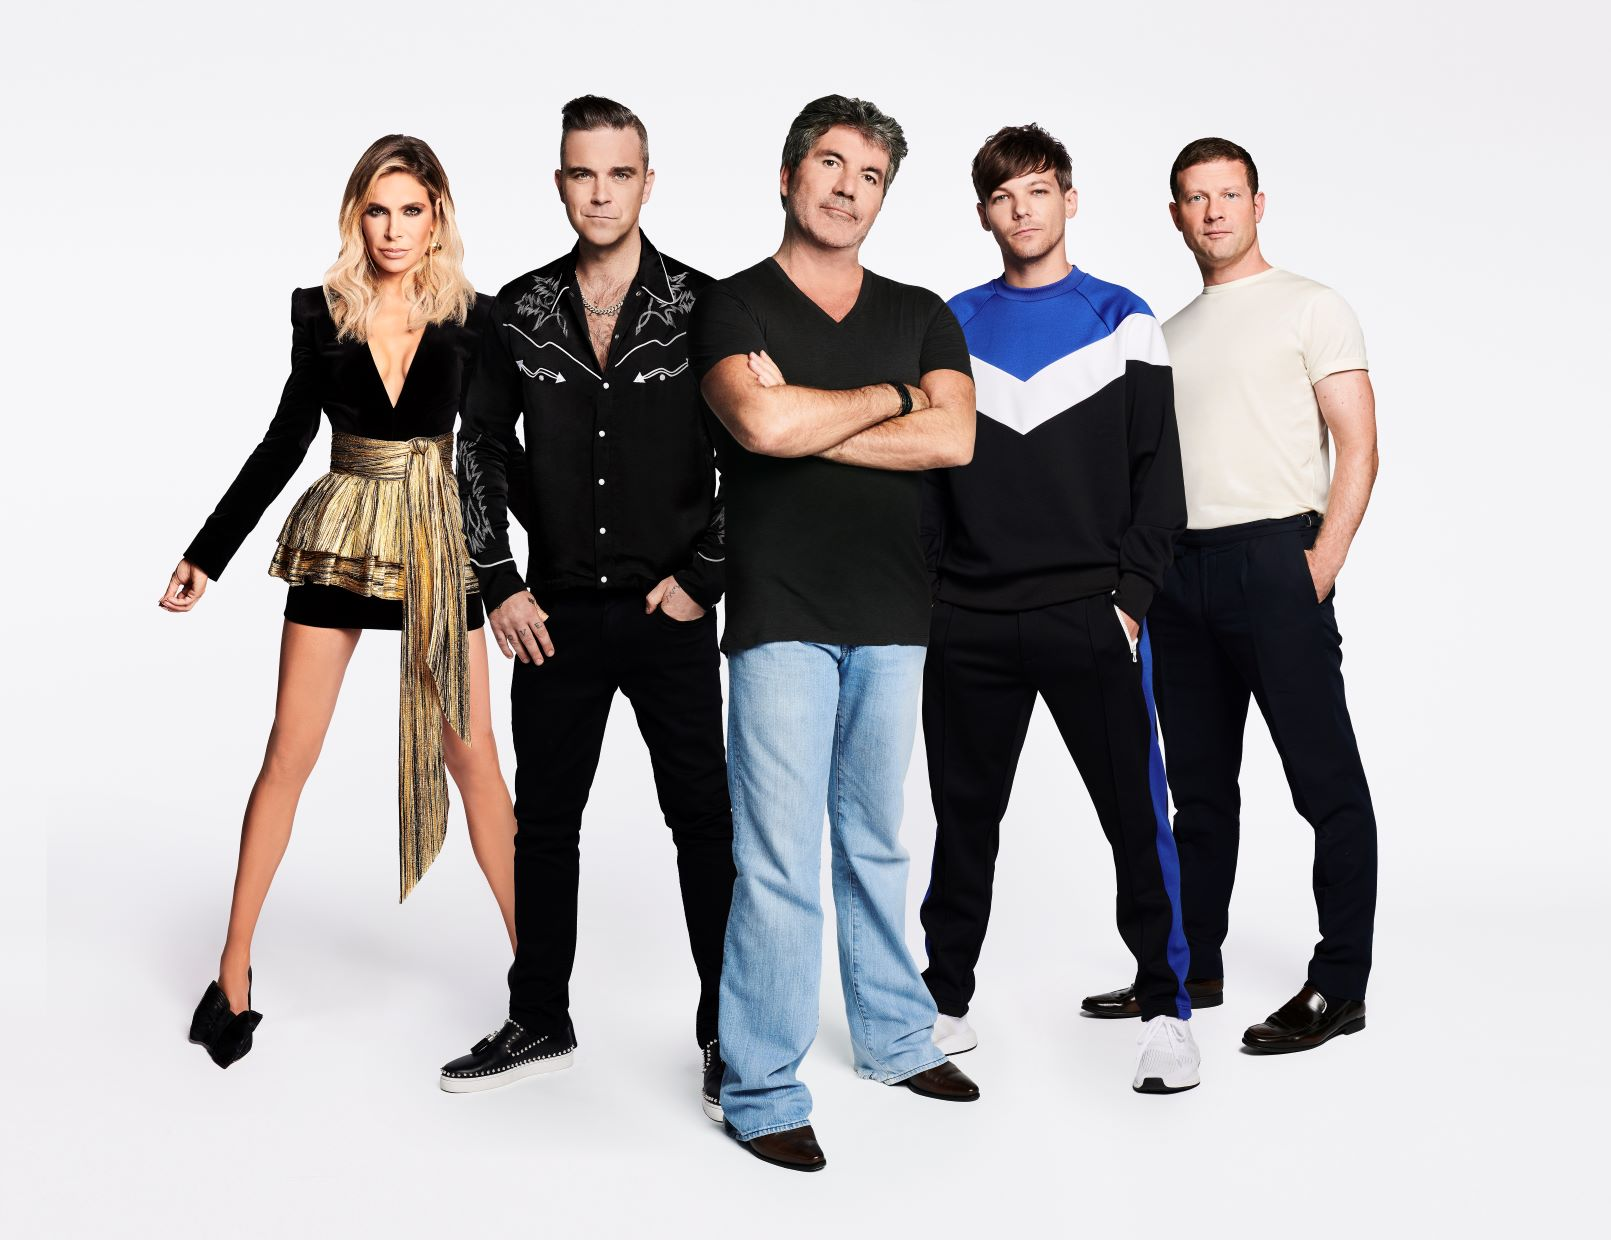 The X Factor volta à TV com Louis Tomlinson, Robbie Williams